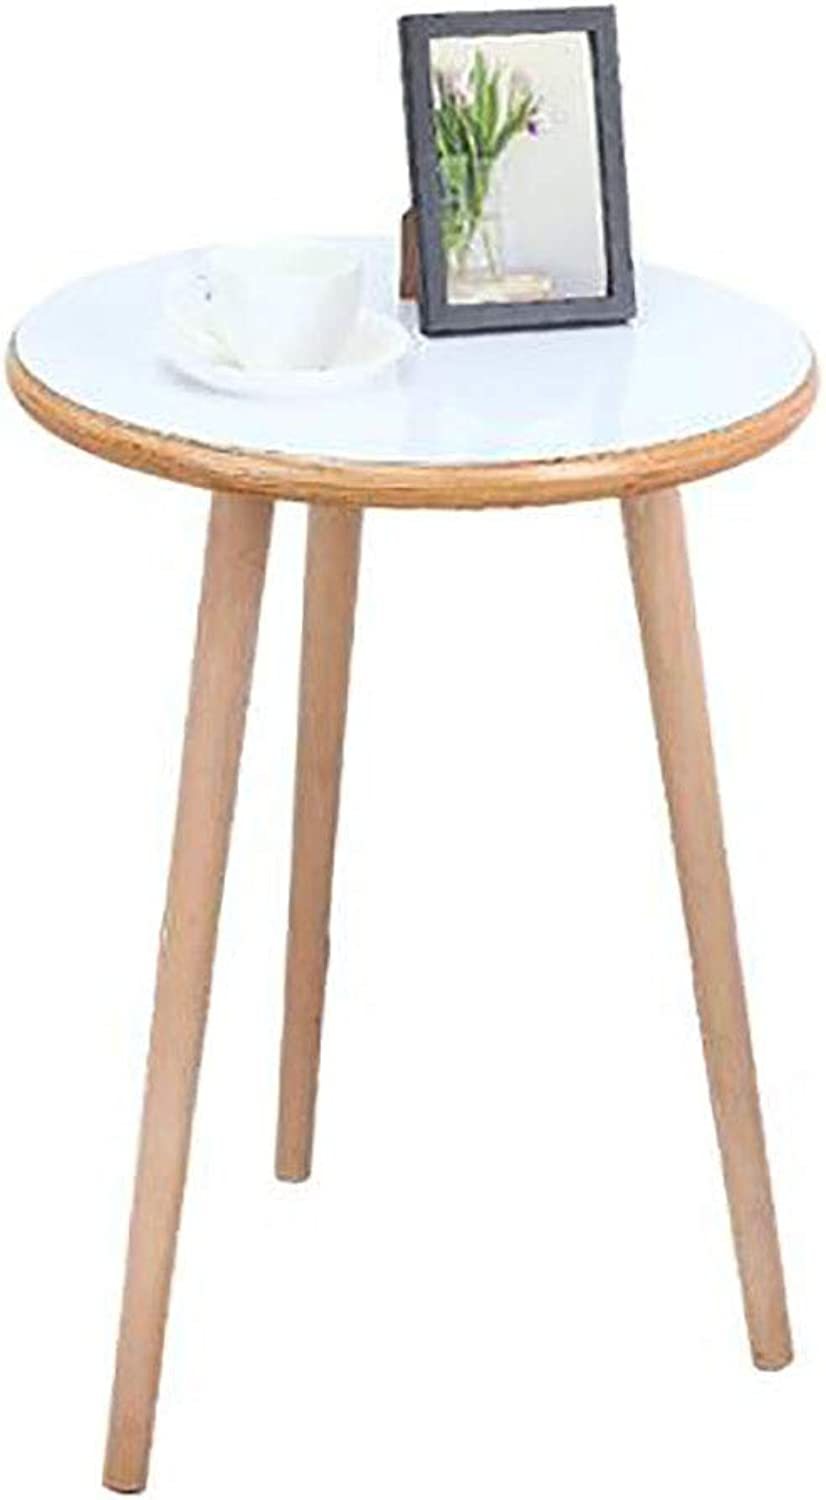 Solid Wood Foot Tea Table Sofa Side Small Round Table Nordic Mini Round Table Corner Coffee Table (Size   40cm)